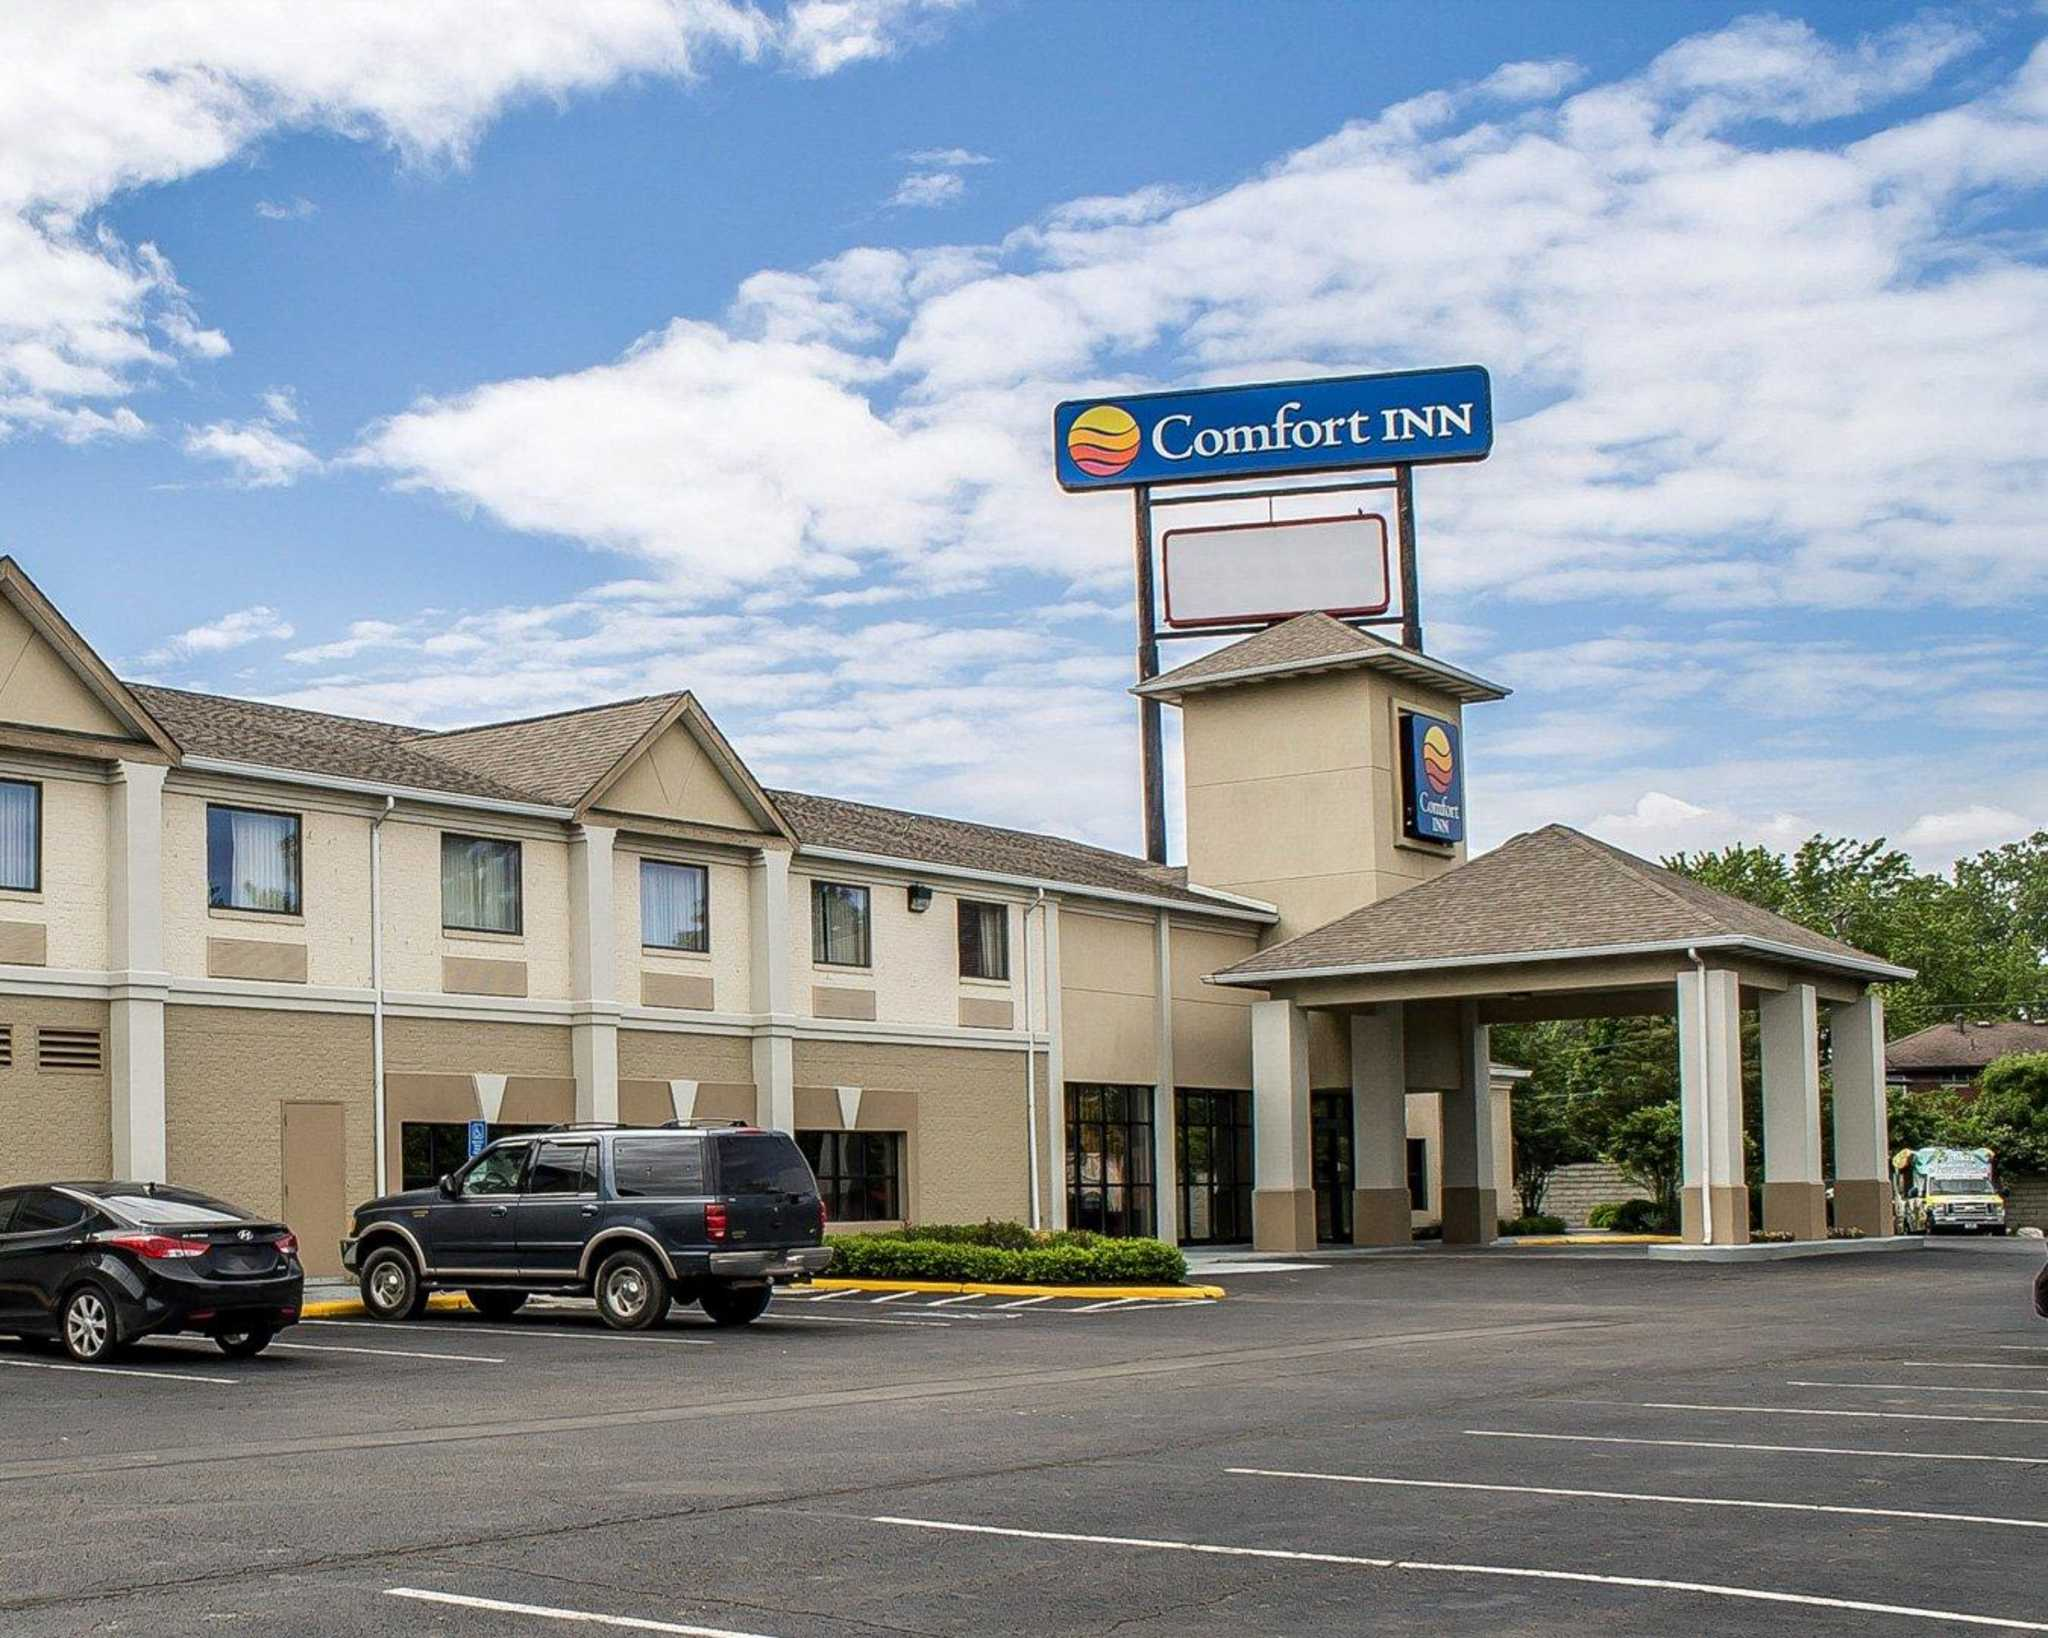 Comfort Inn North Conference Center image 2